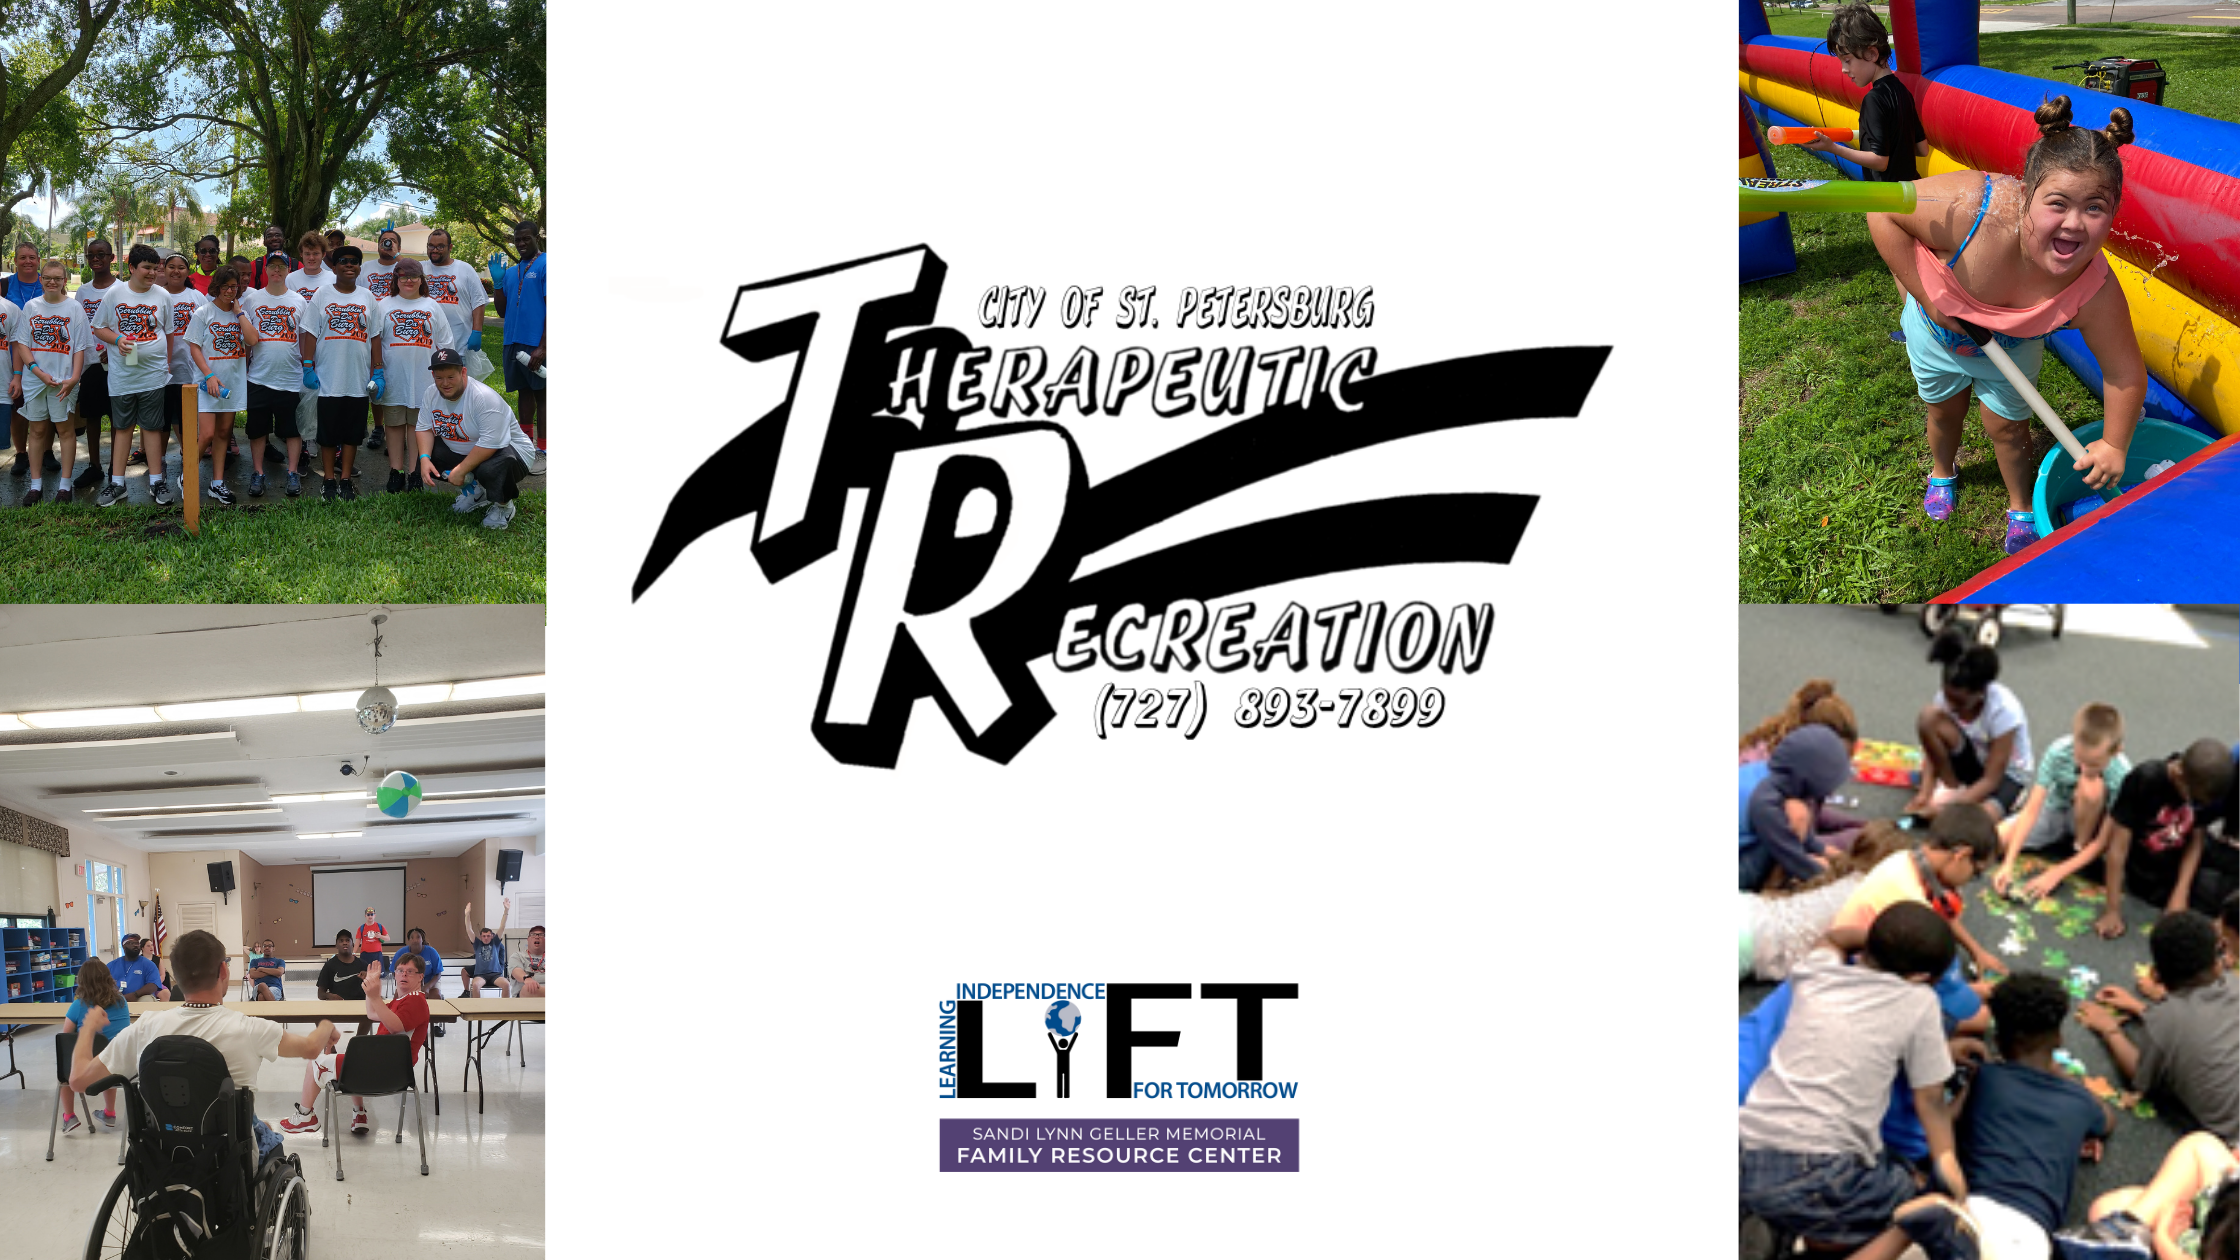 October Resource: City of St. Petersburg Therapeutic Recreation